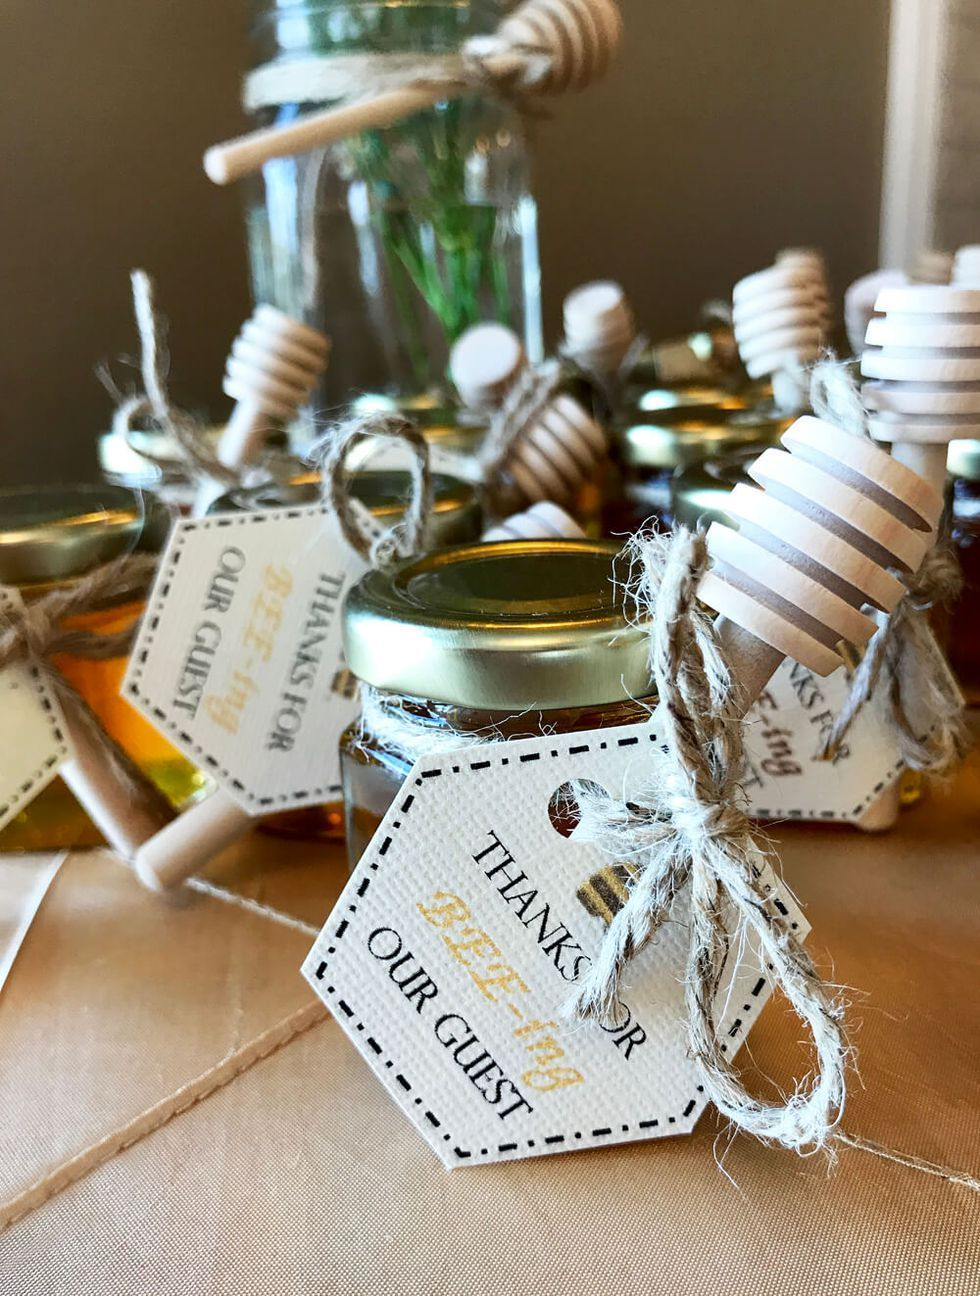 The Most Adorable Bridal Shower Favor Ideas We've Seen in